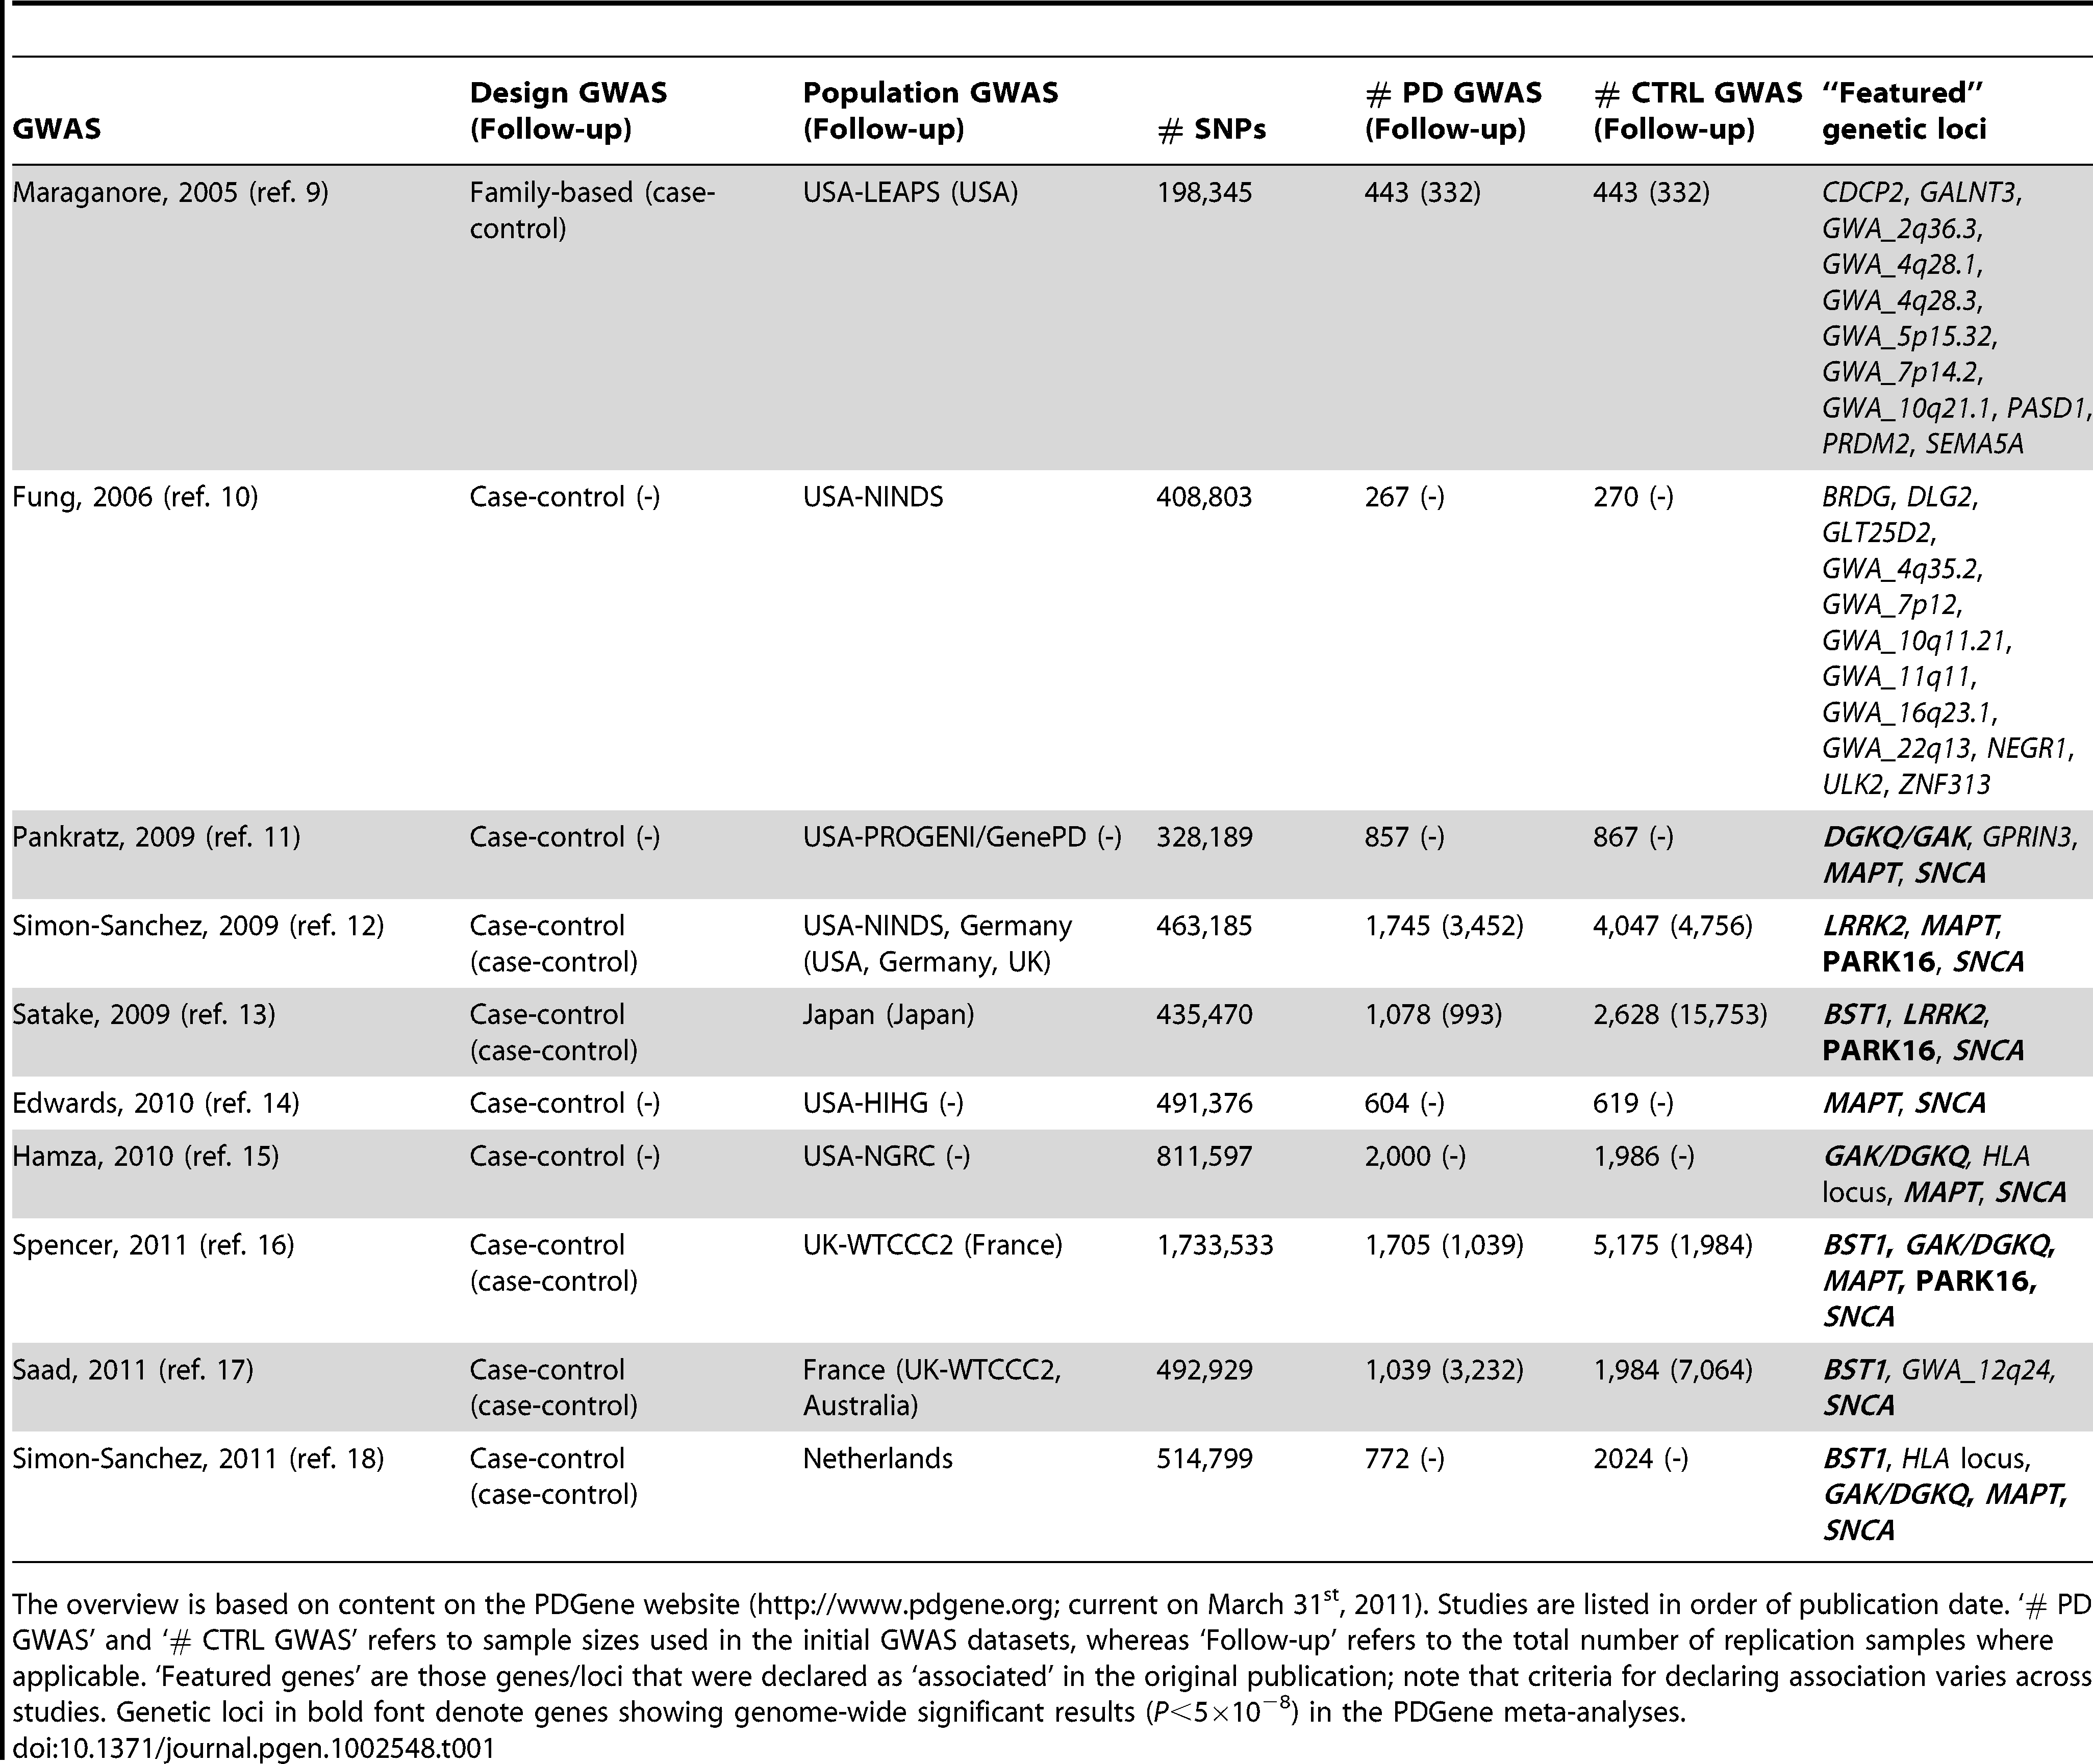 Overview of genome-wide association studies (GWAS) published in PD until March 31, 2011.